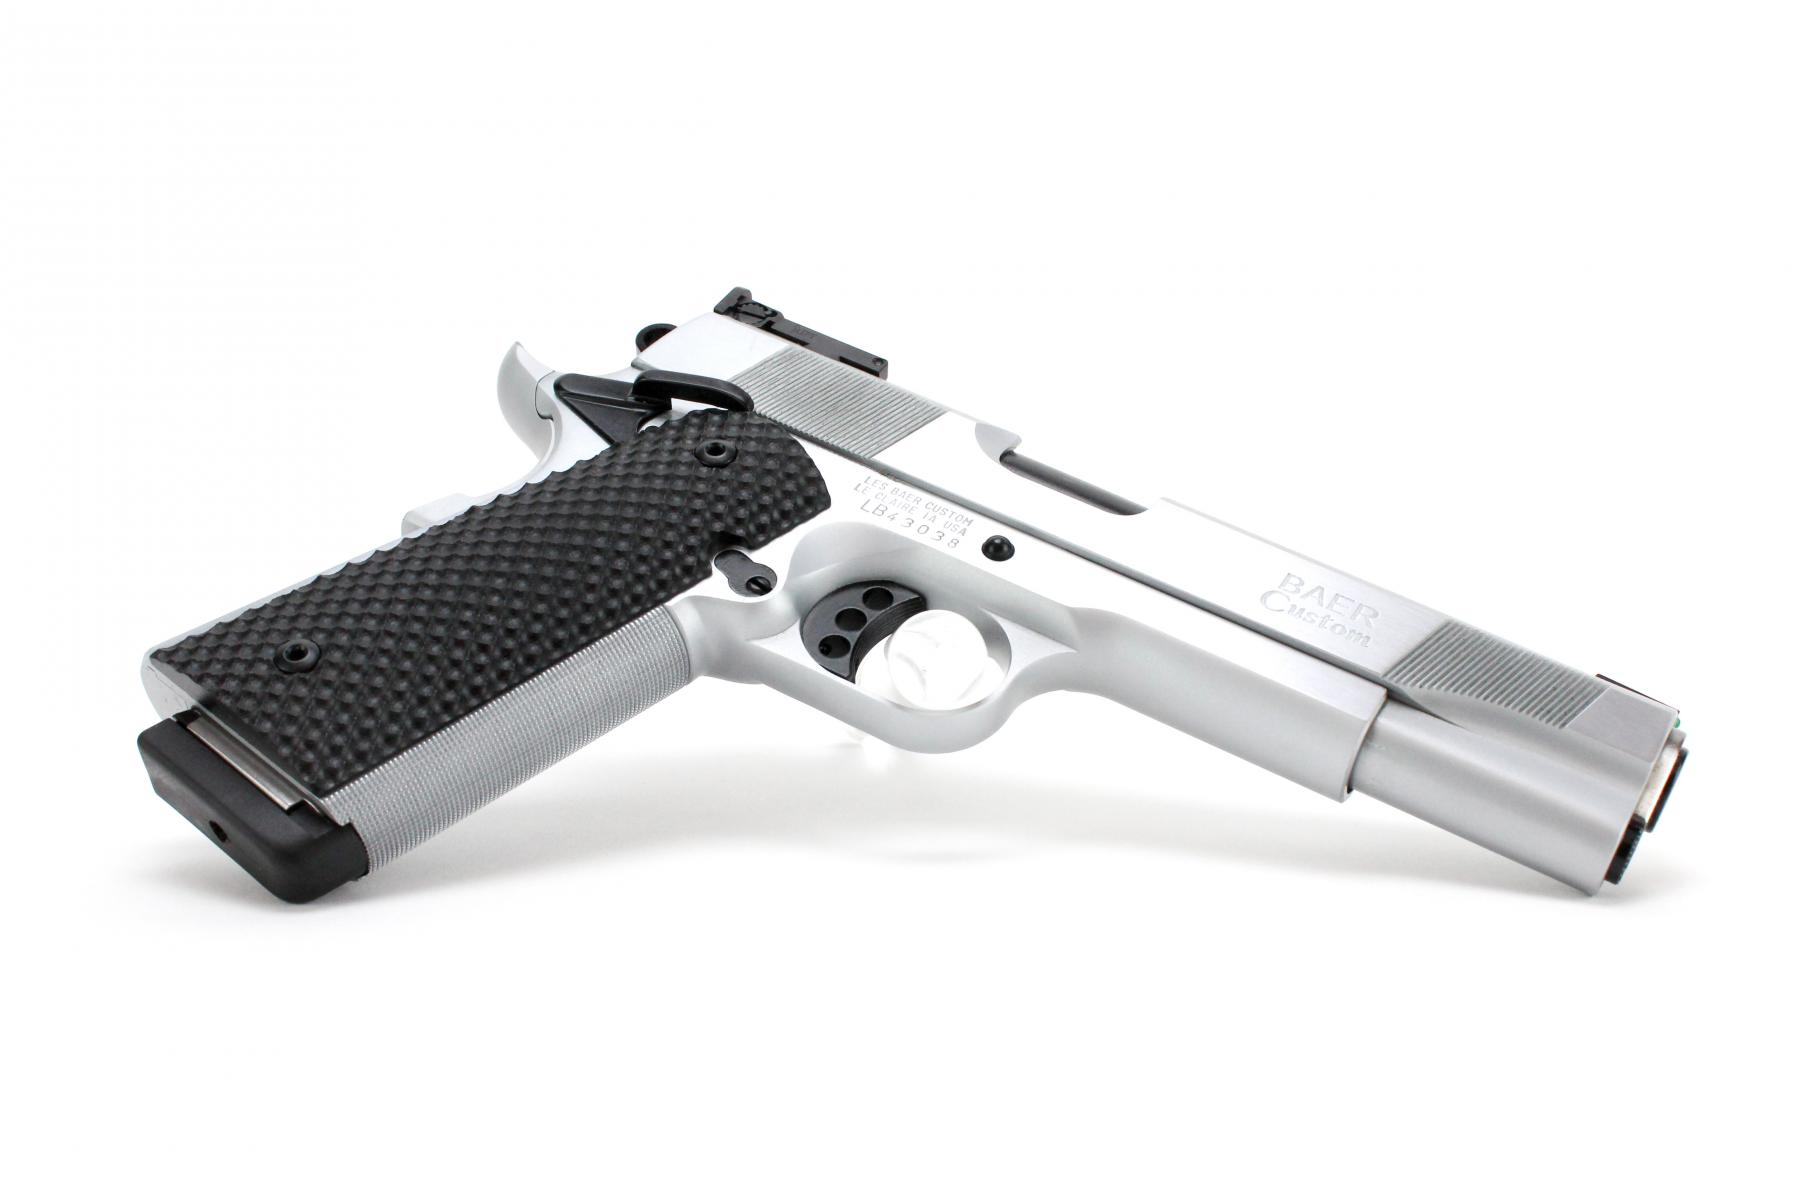 "Baer Custom 1911 Hemi 572 | .45 ACP 5"" Barrel, Hard Chrome Frame/Slide, Adjustable Rear Sight, Dupont S Black Coating on Small Parts, Ambi Safety, 2 Magazines"